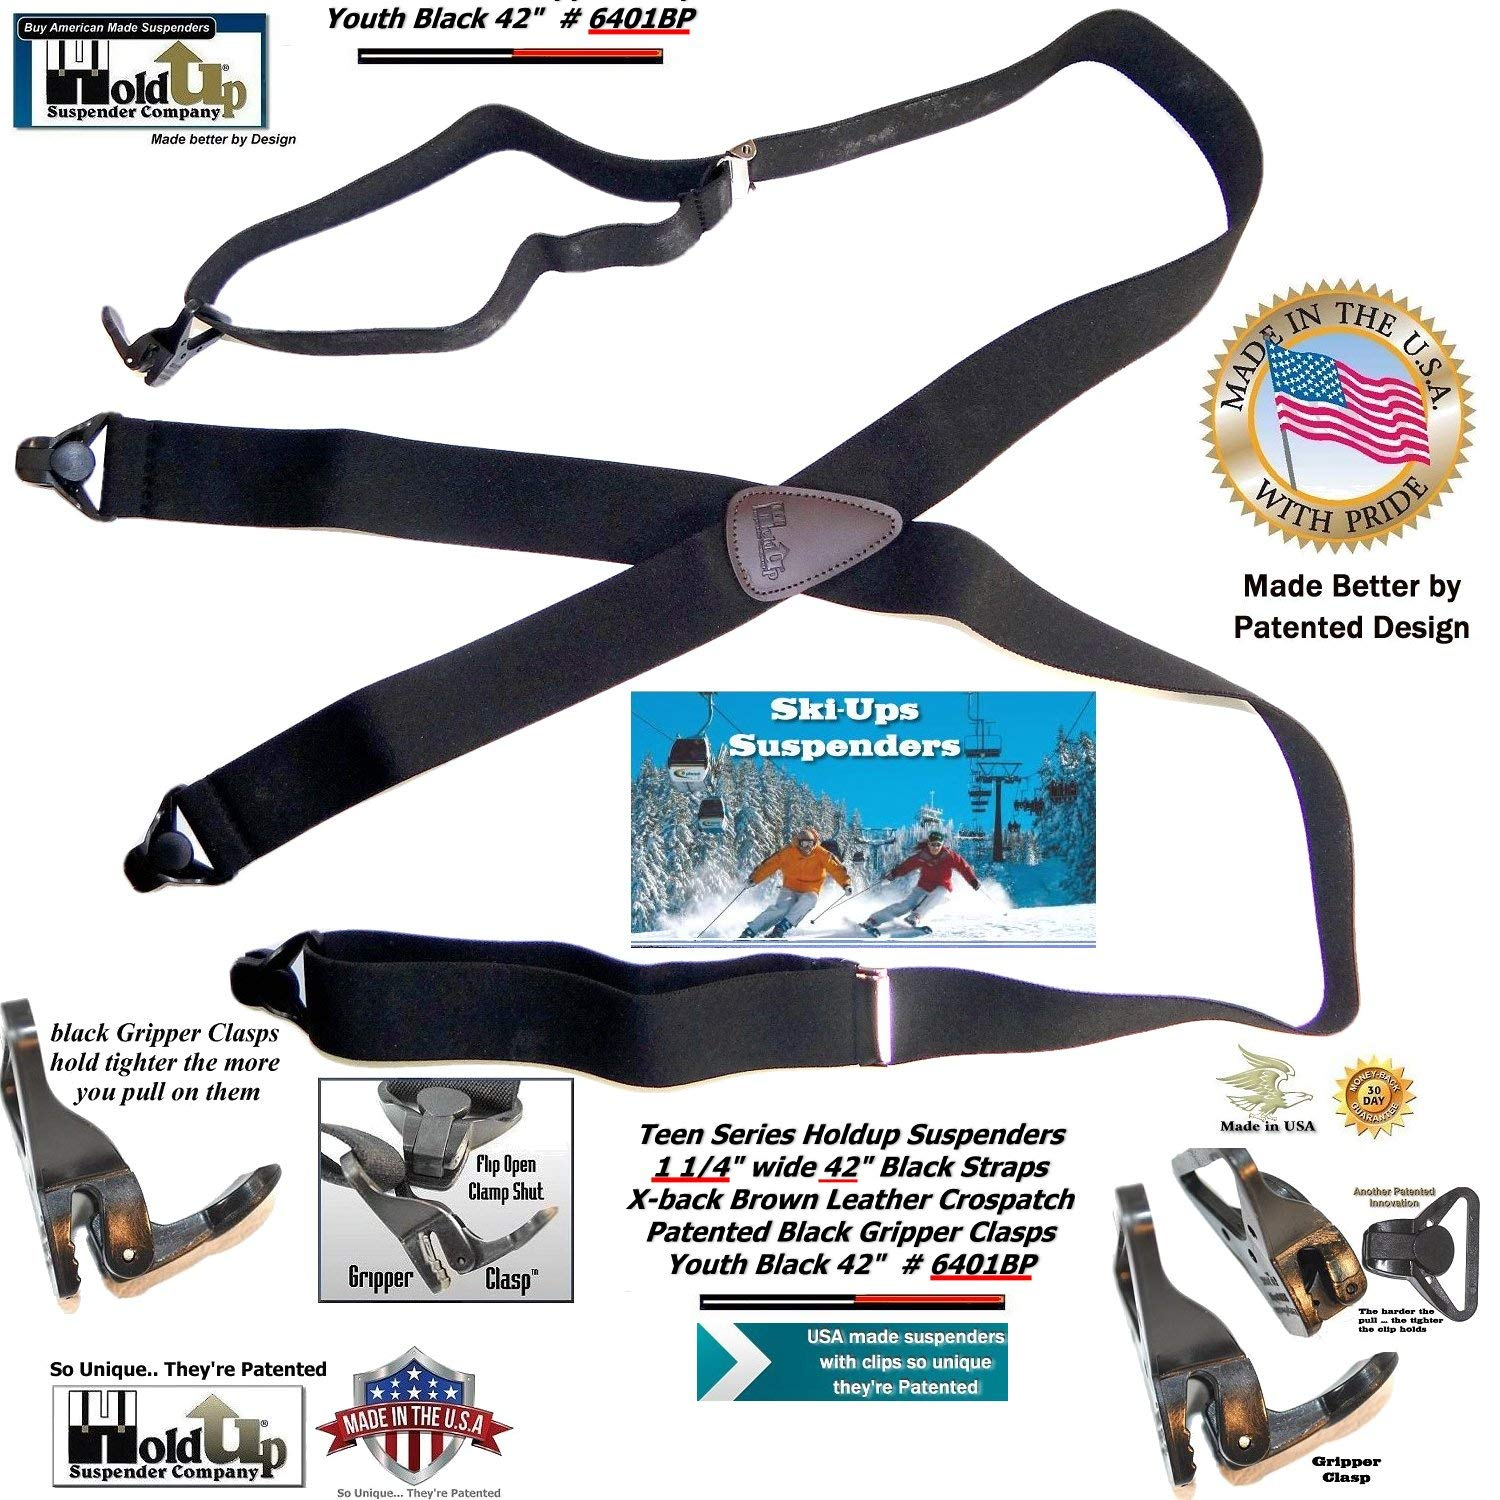 Holdup 42 Teenager sized Black Ski and sports Suspenders with Patented Gripper Clasps